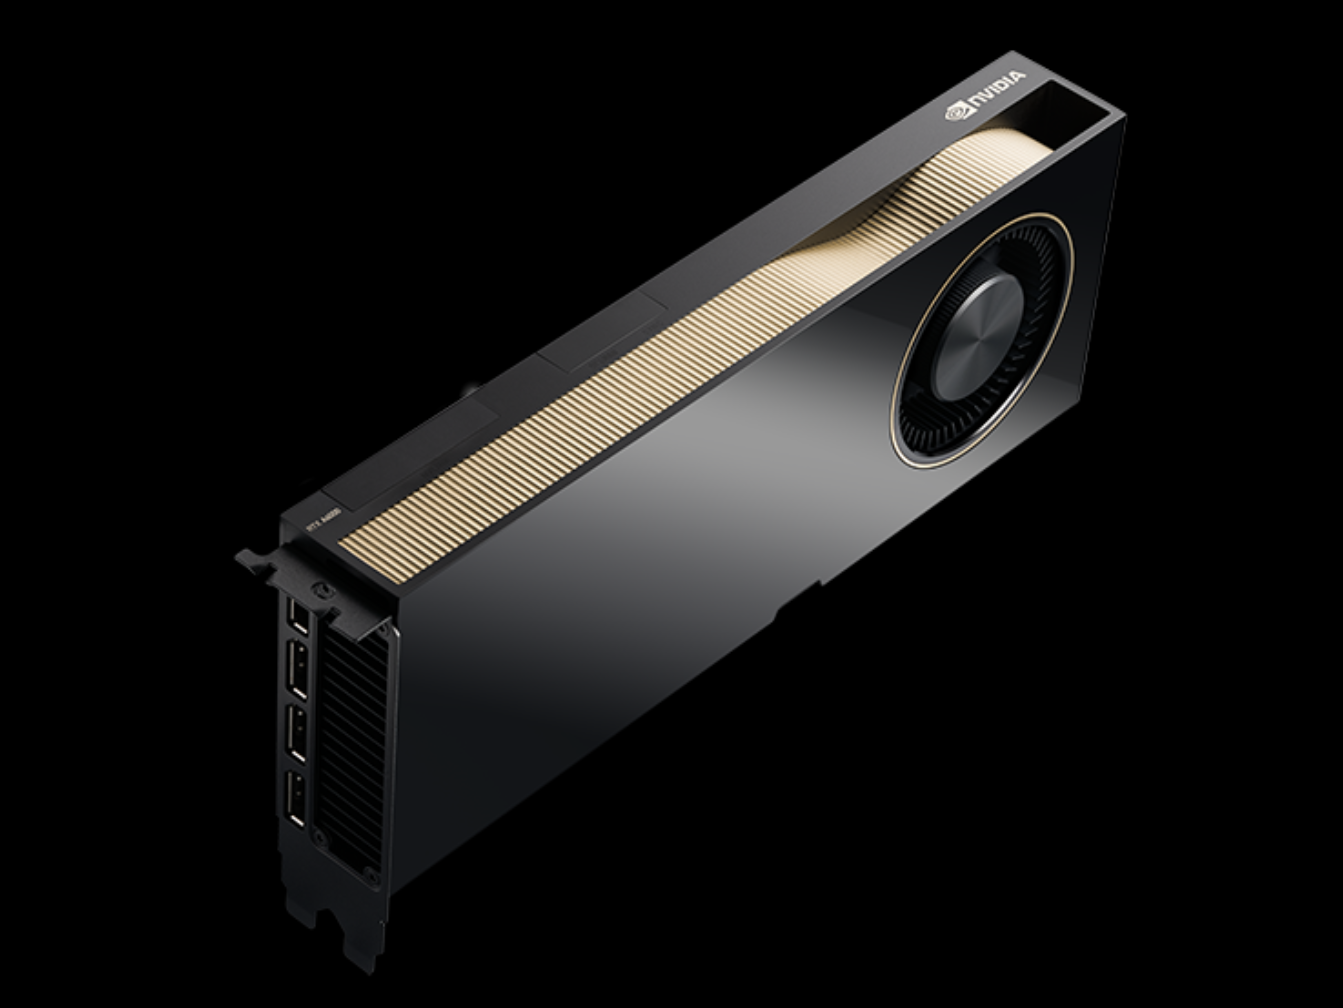 nvidia-readies-rtx-a5000-&-rtx-a4000-ampere-workstation-graphics-cards,-a5000-spotted-in-pro-laptop